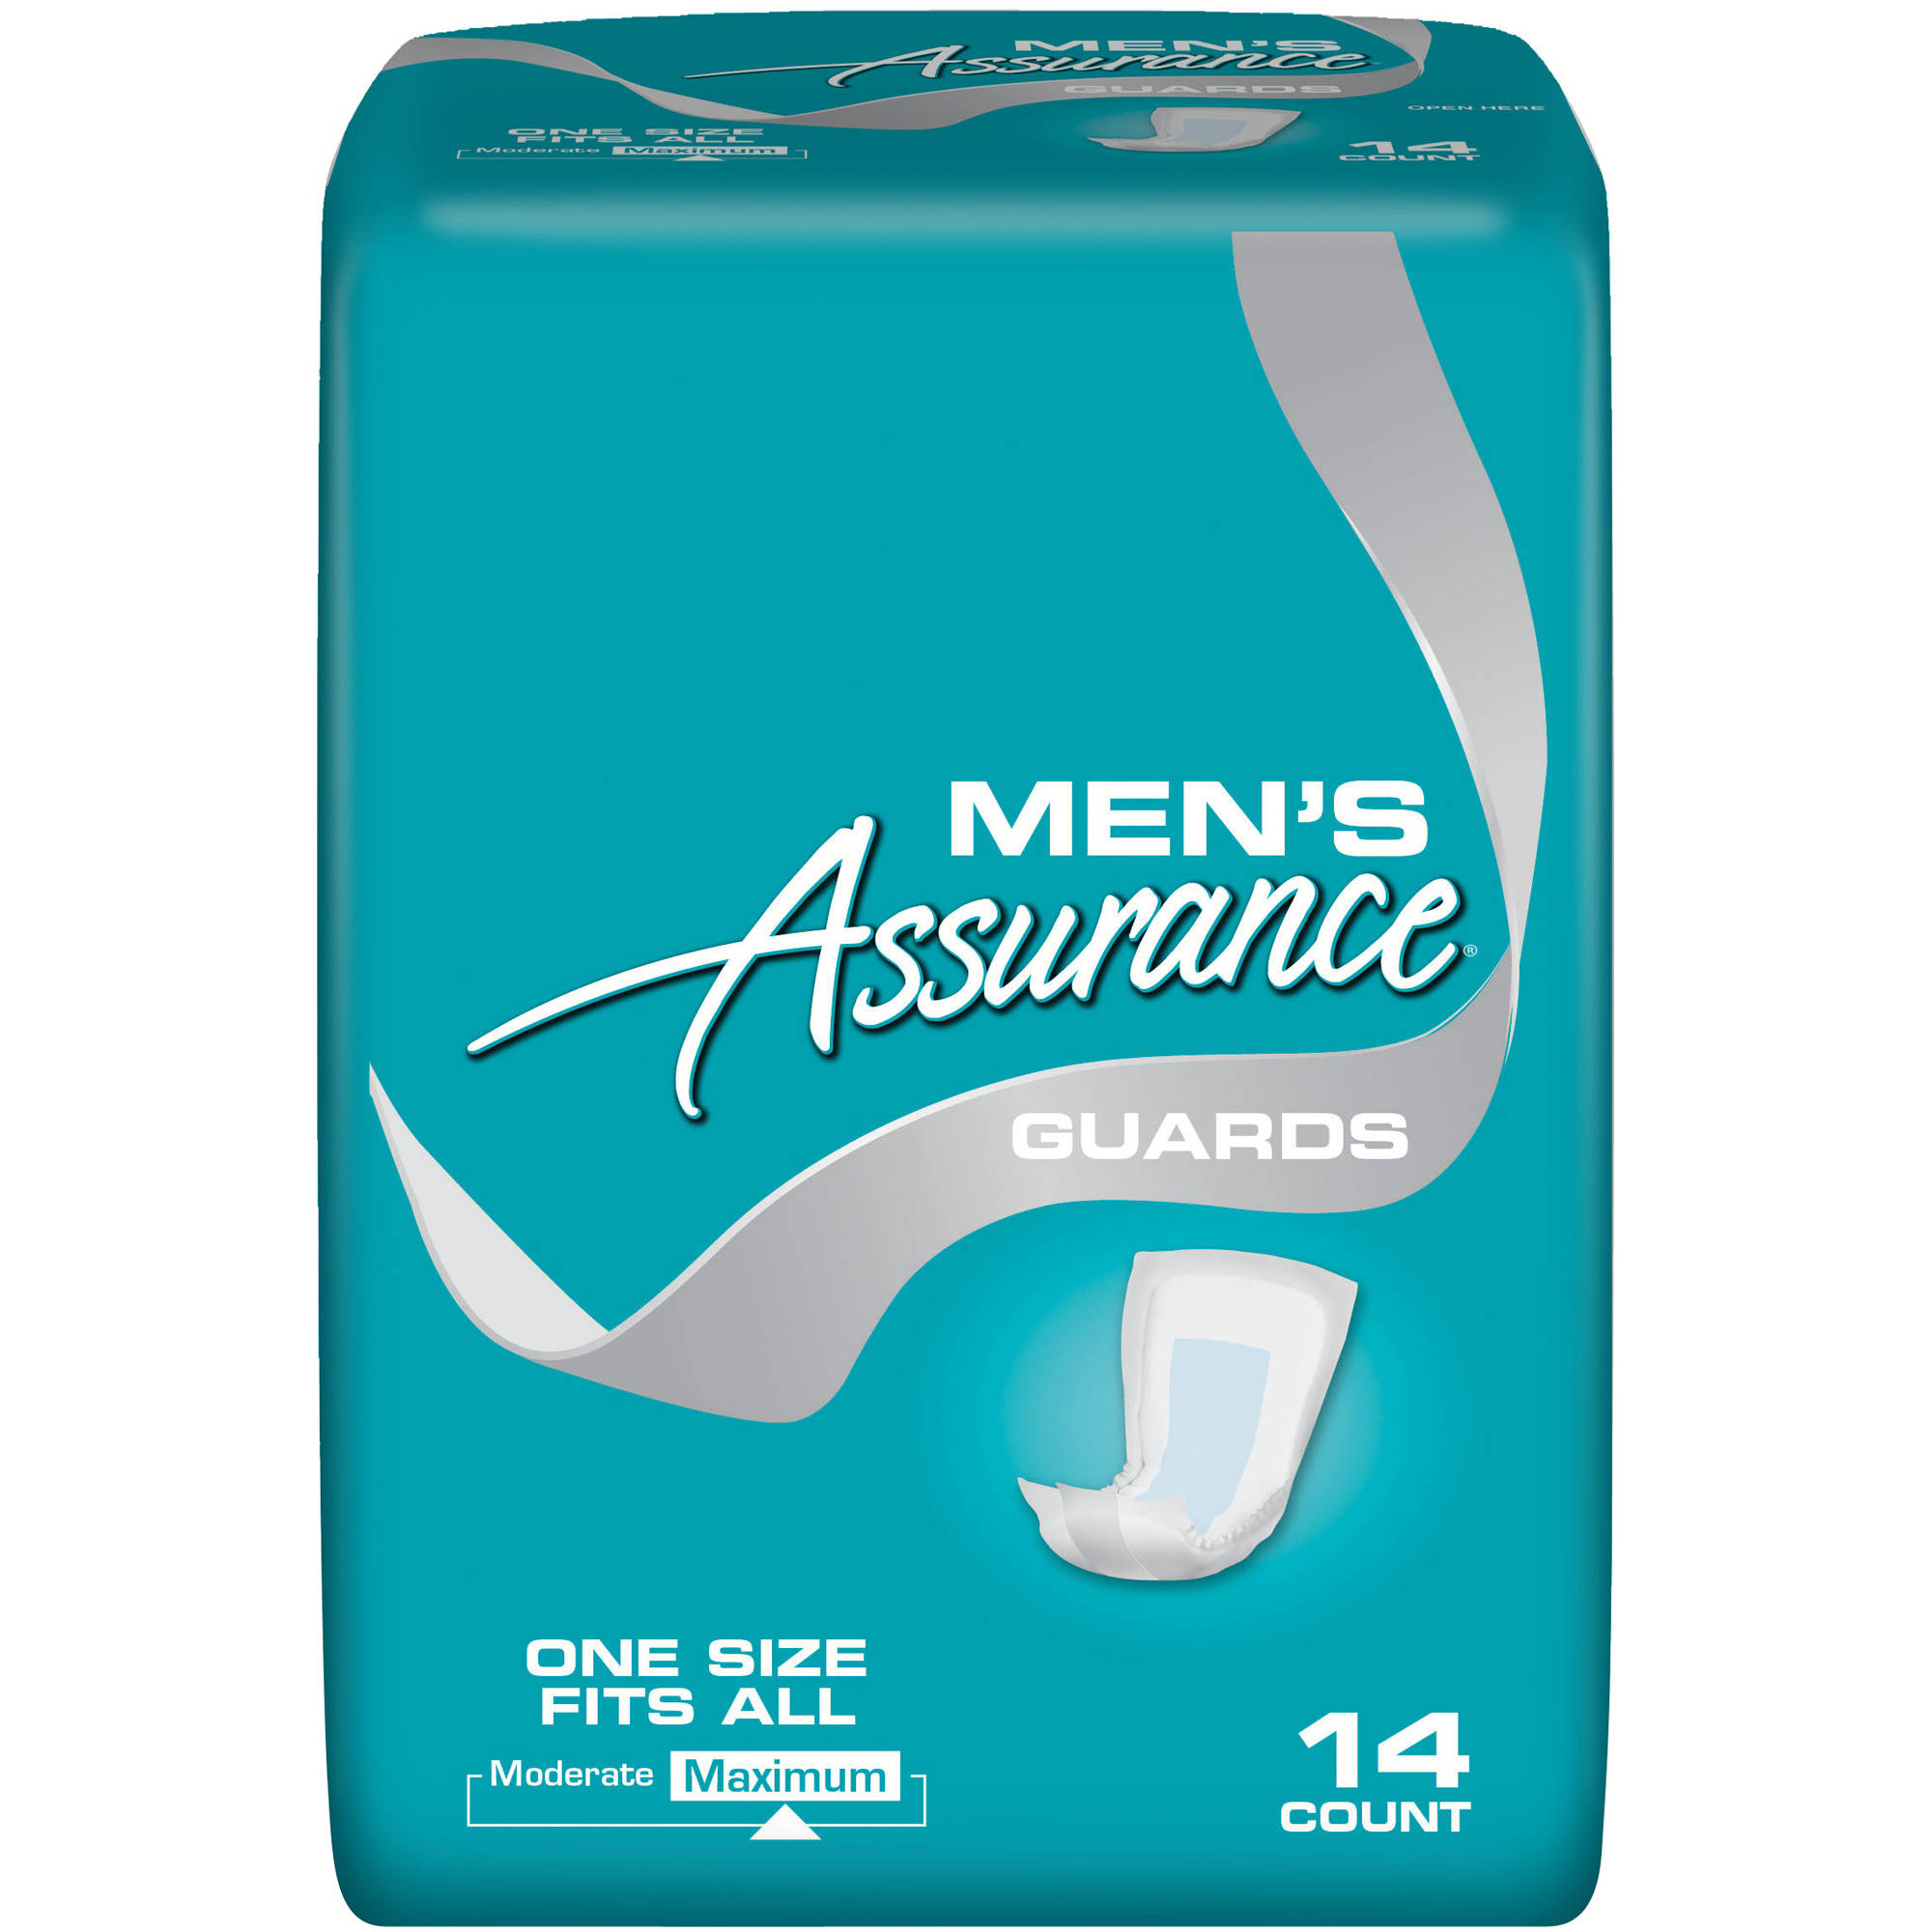 Assurance Men's Maximum Absorbency Guards, 14 count